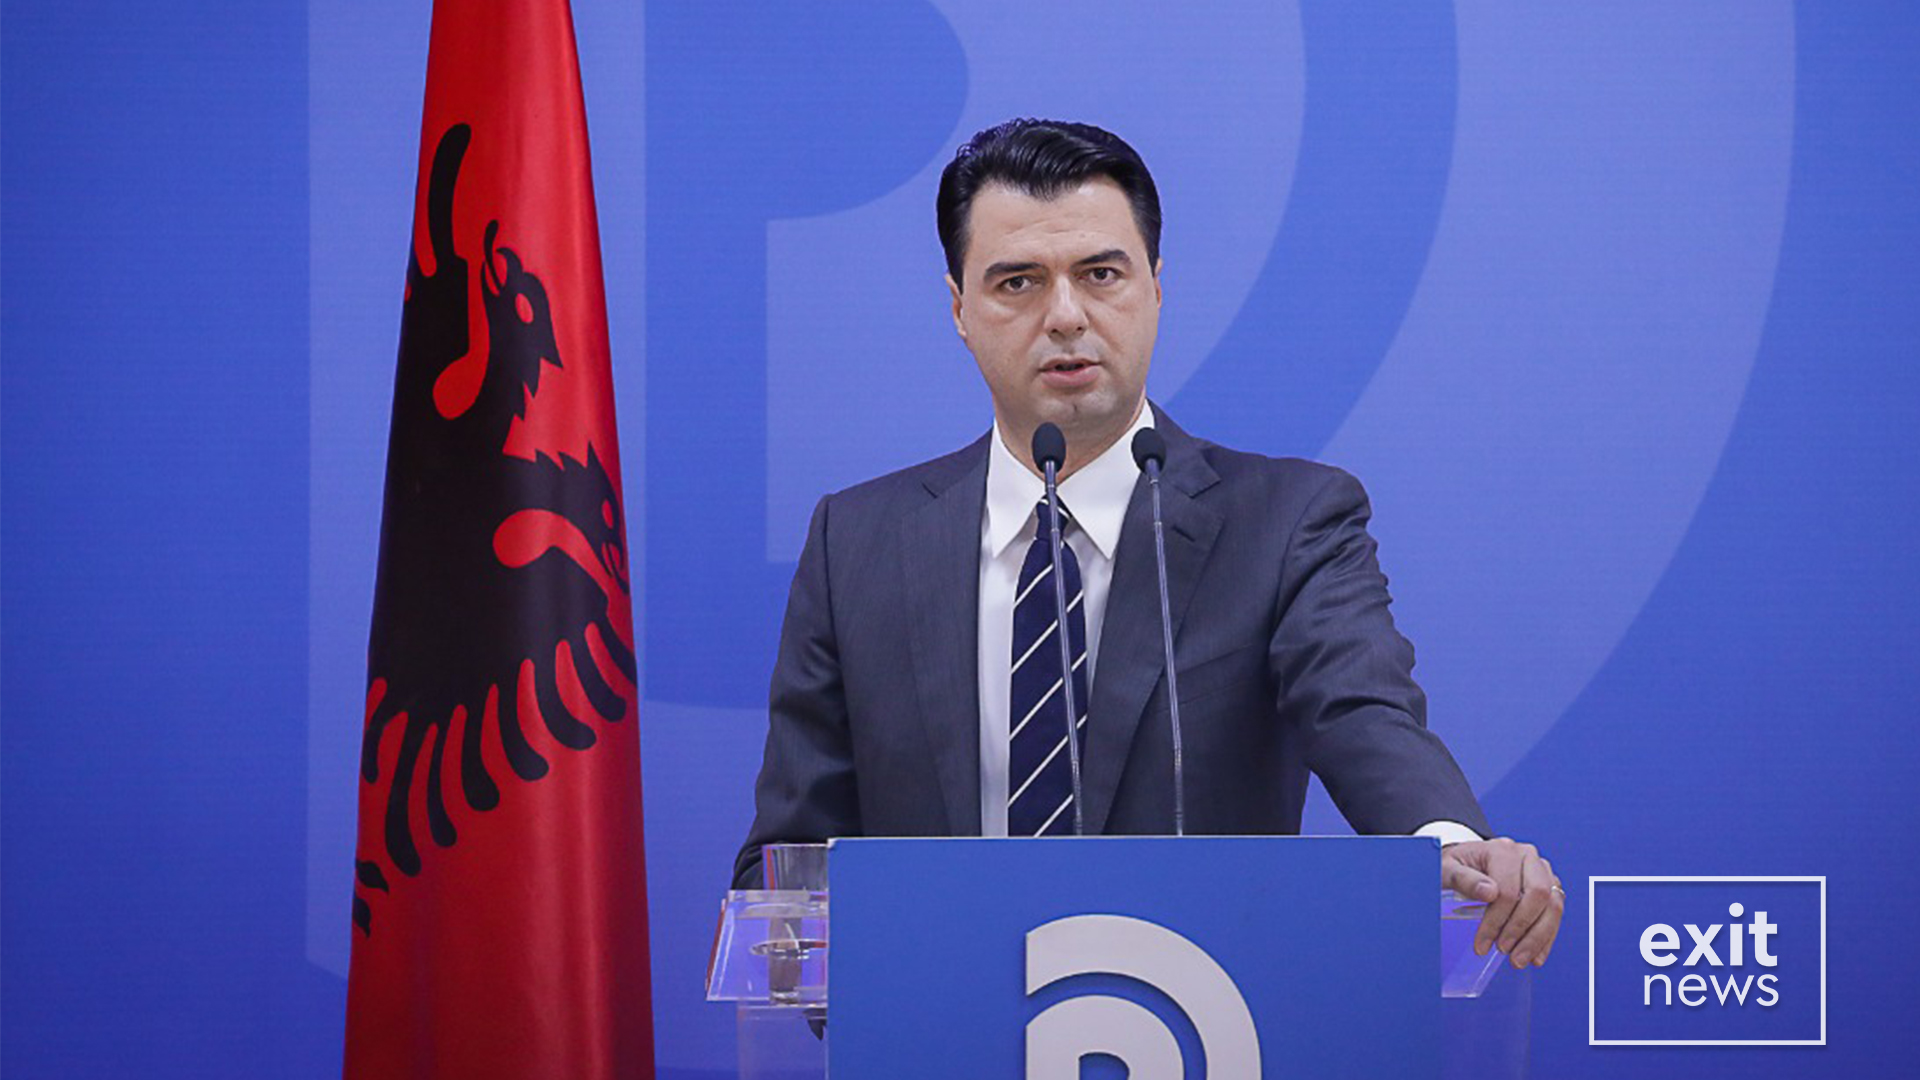 Albanian Opposition Determined to Conclude the Electoral Reform